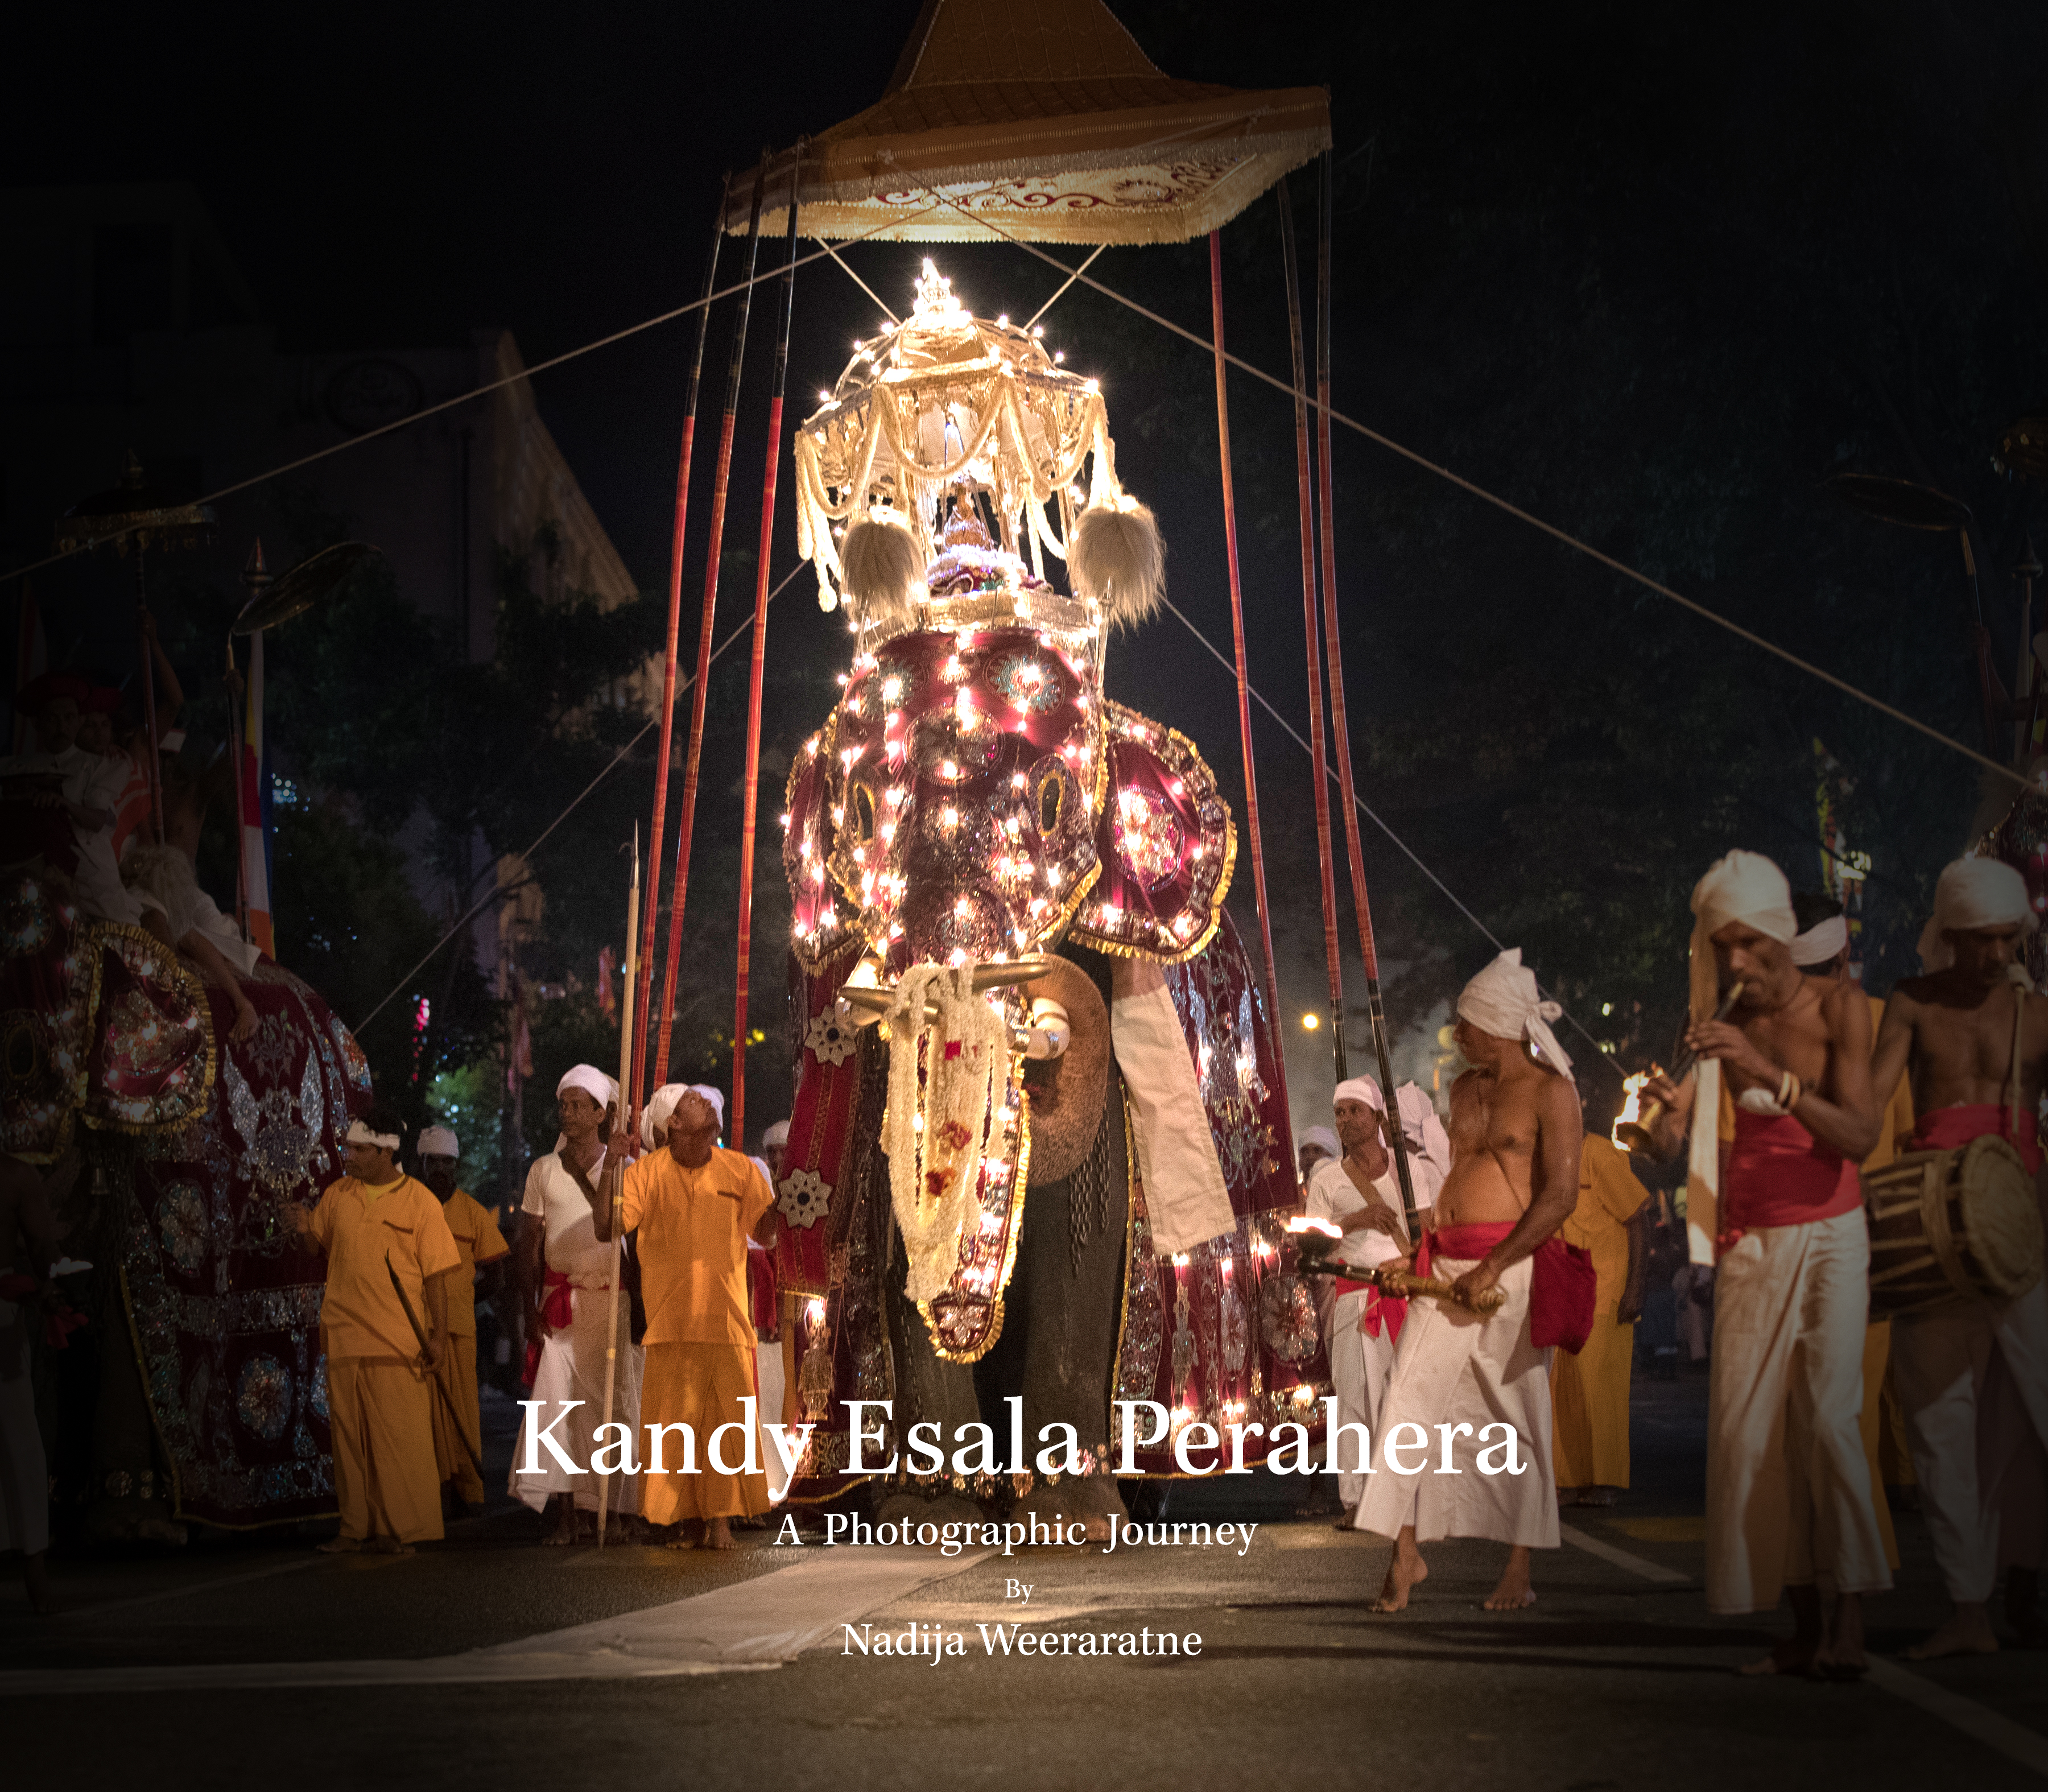 Kandy Esala Perahera : A Photographic Journey